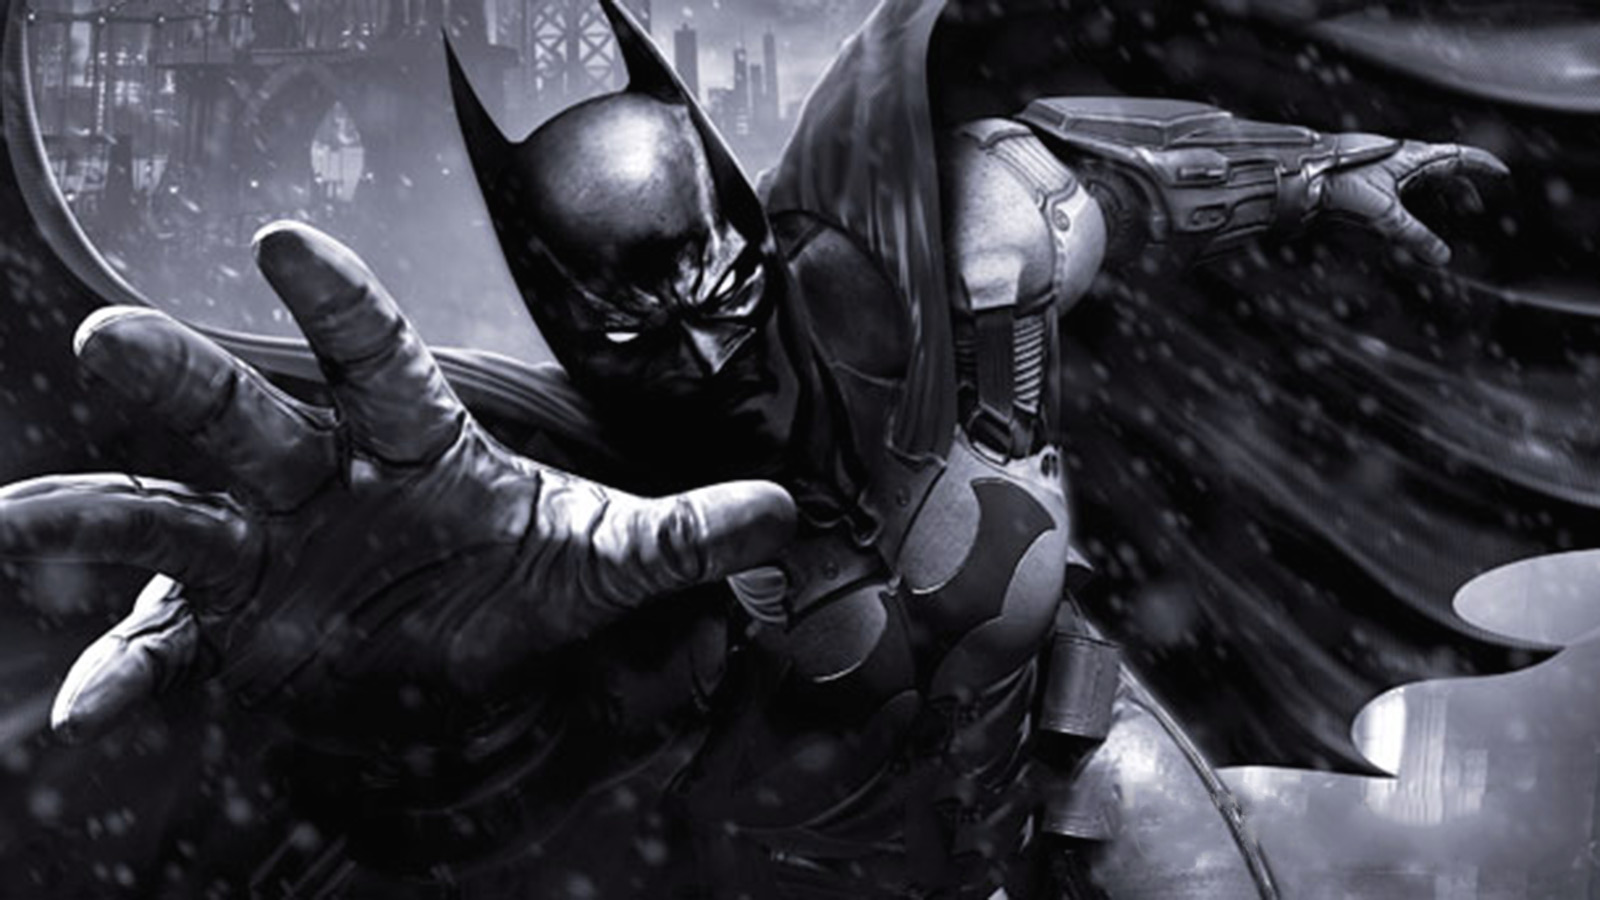 Batman Arkham Asylum Anime 720p Wallpaper 1080 17460 Hd 1600x900